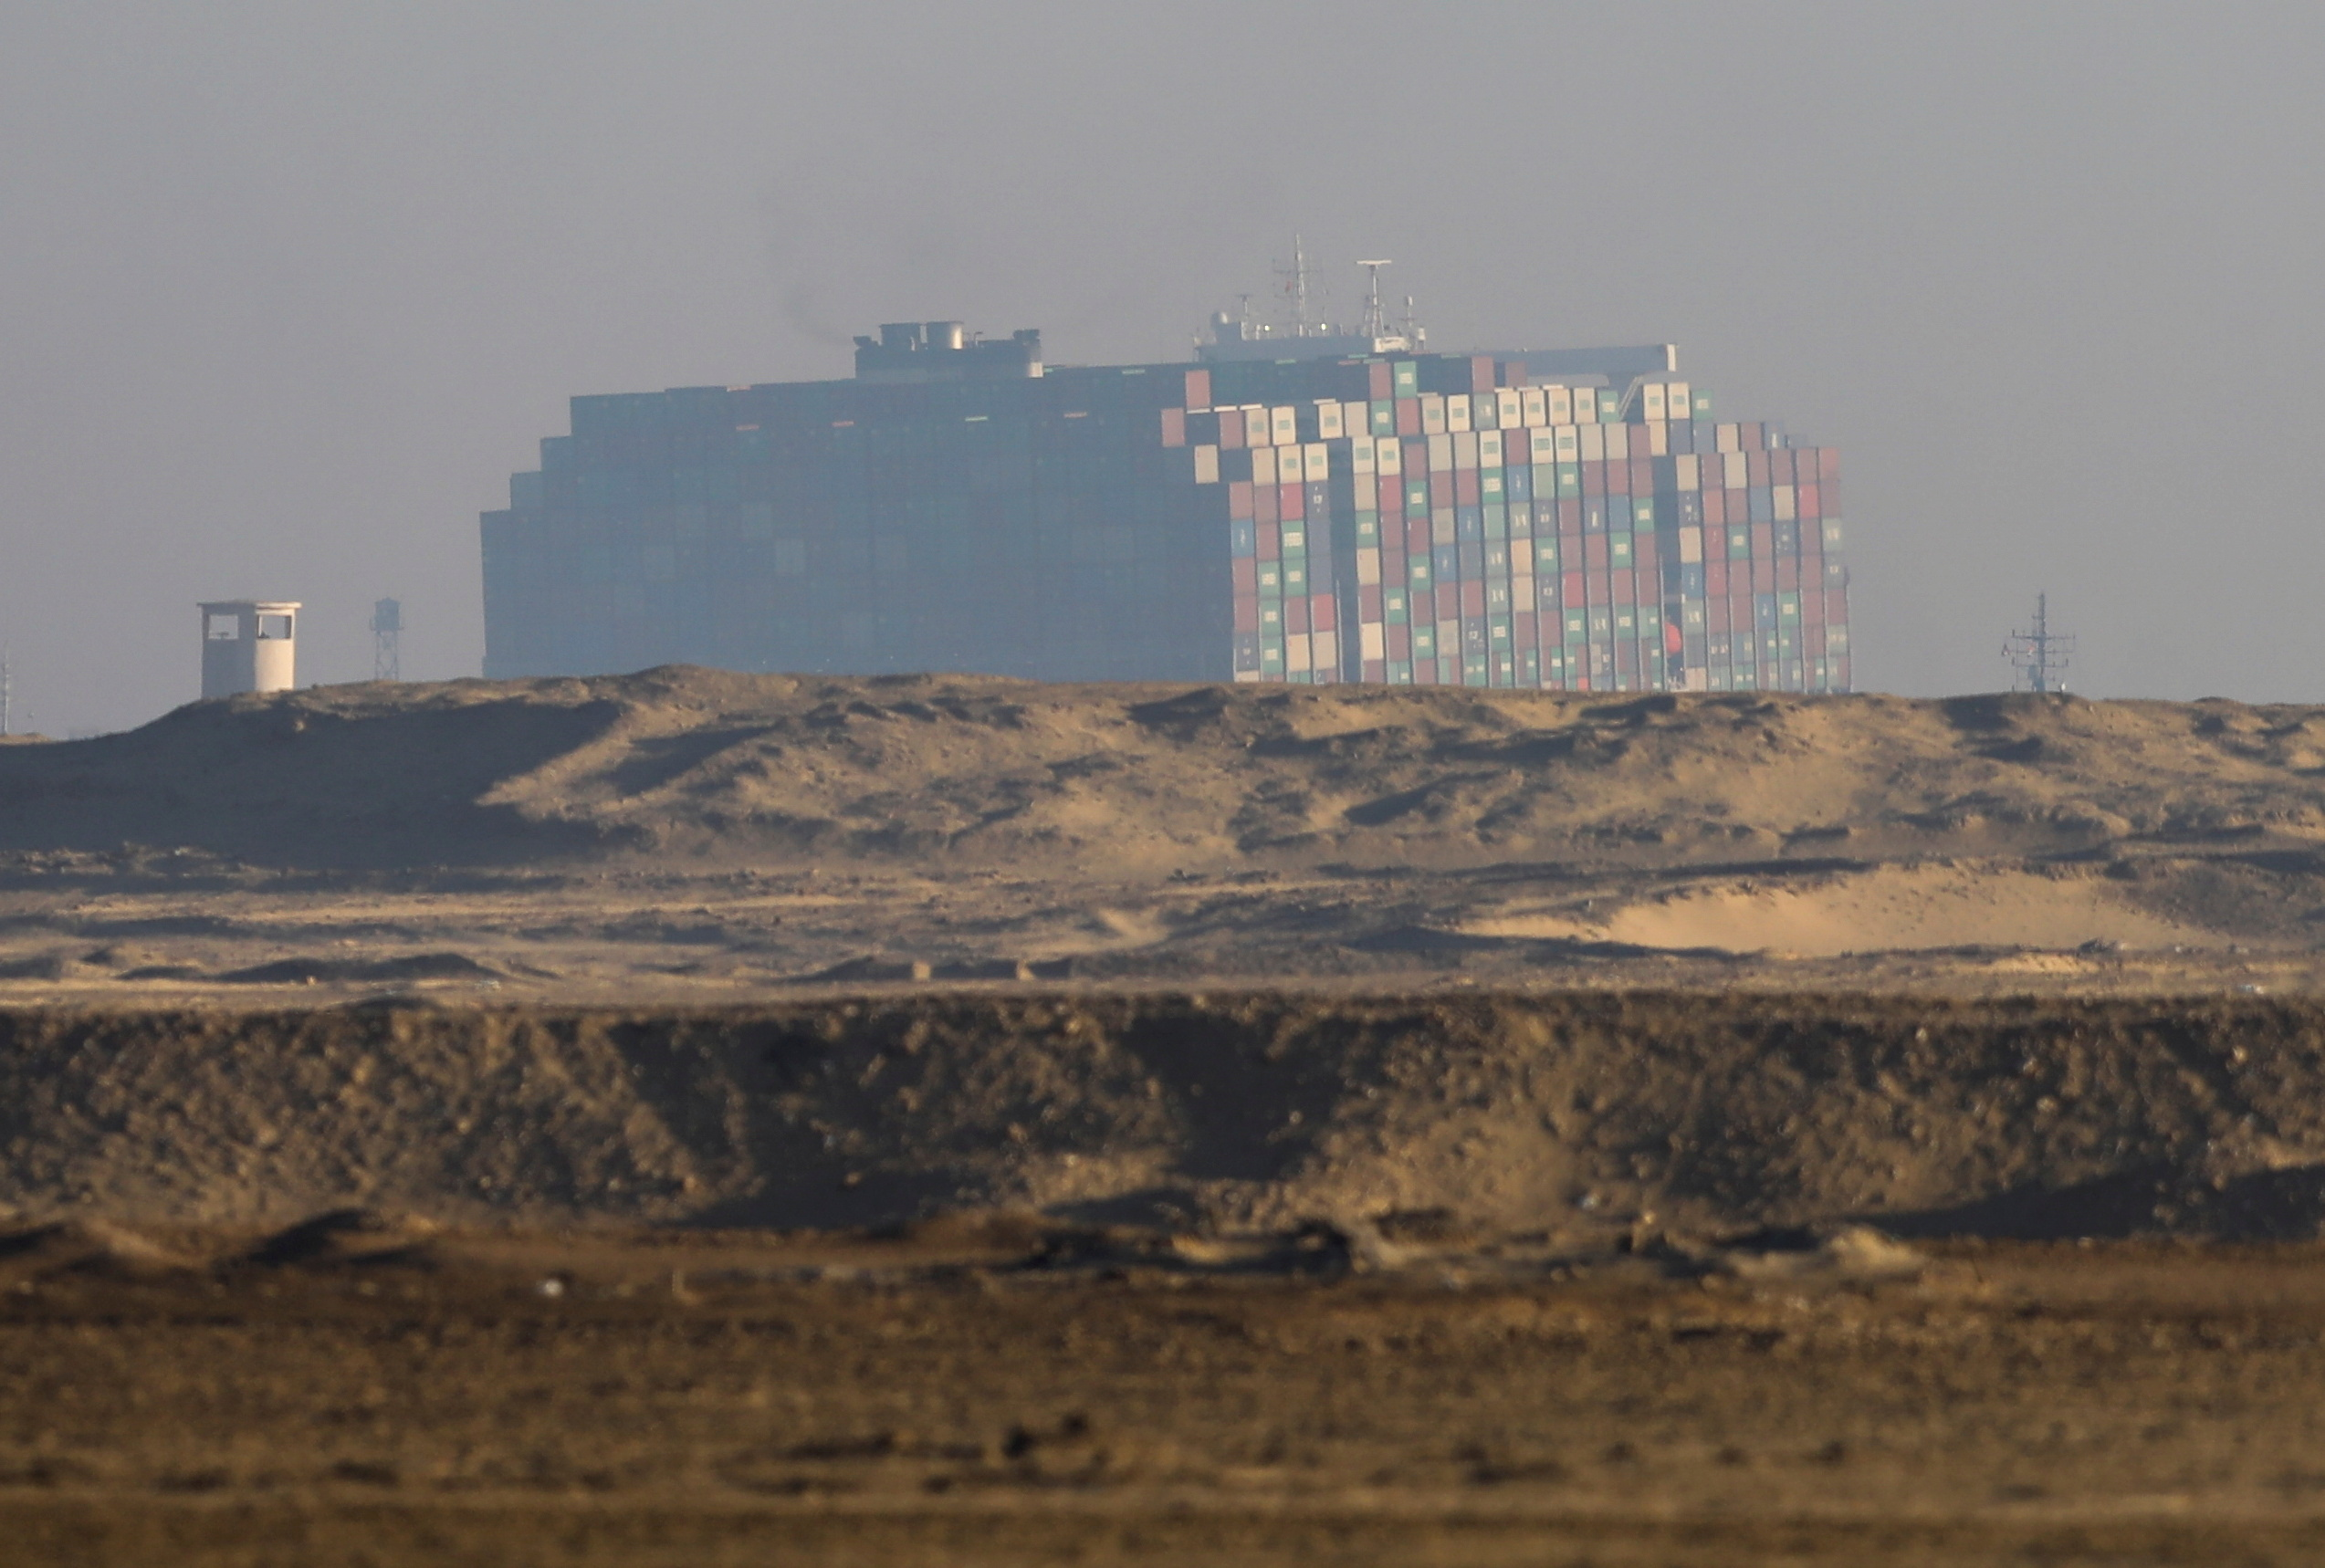 A view shows the container ship Ever Given, one of the world's largest container ships, in Suez Canal, Egypt March 29, 2021. REUTERS/Mohamed Abd El Ghany